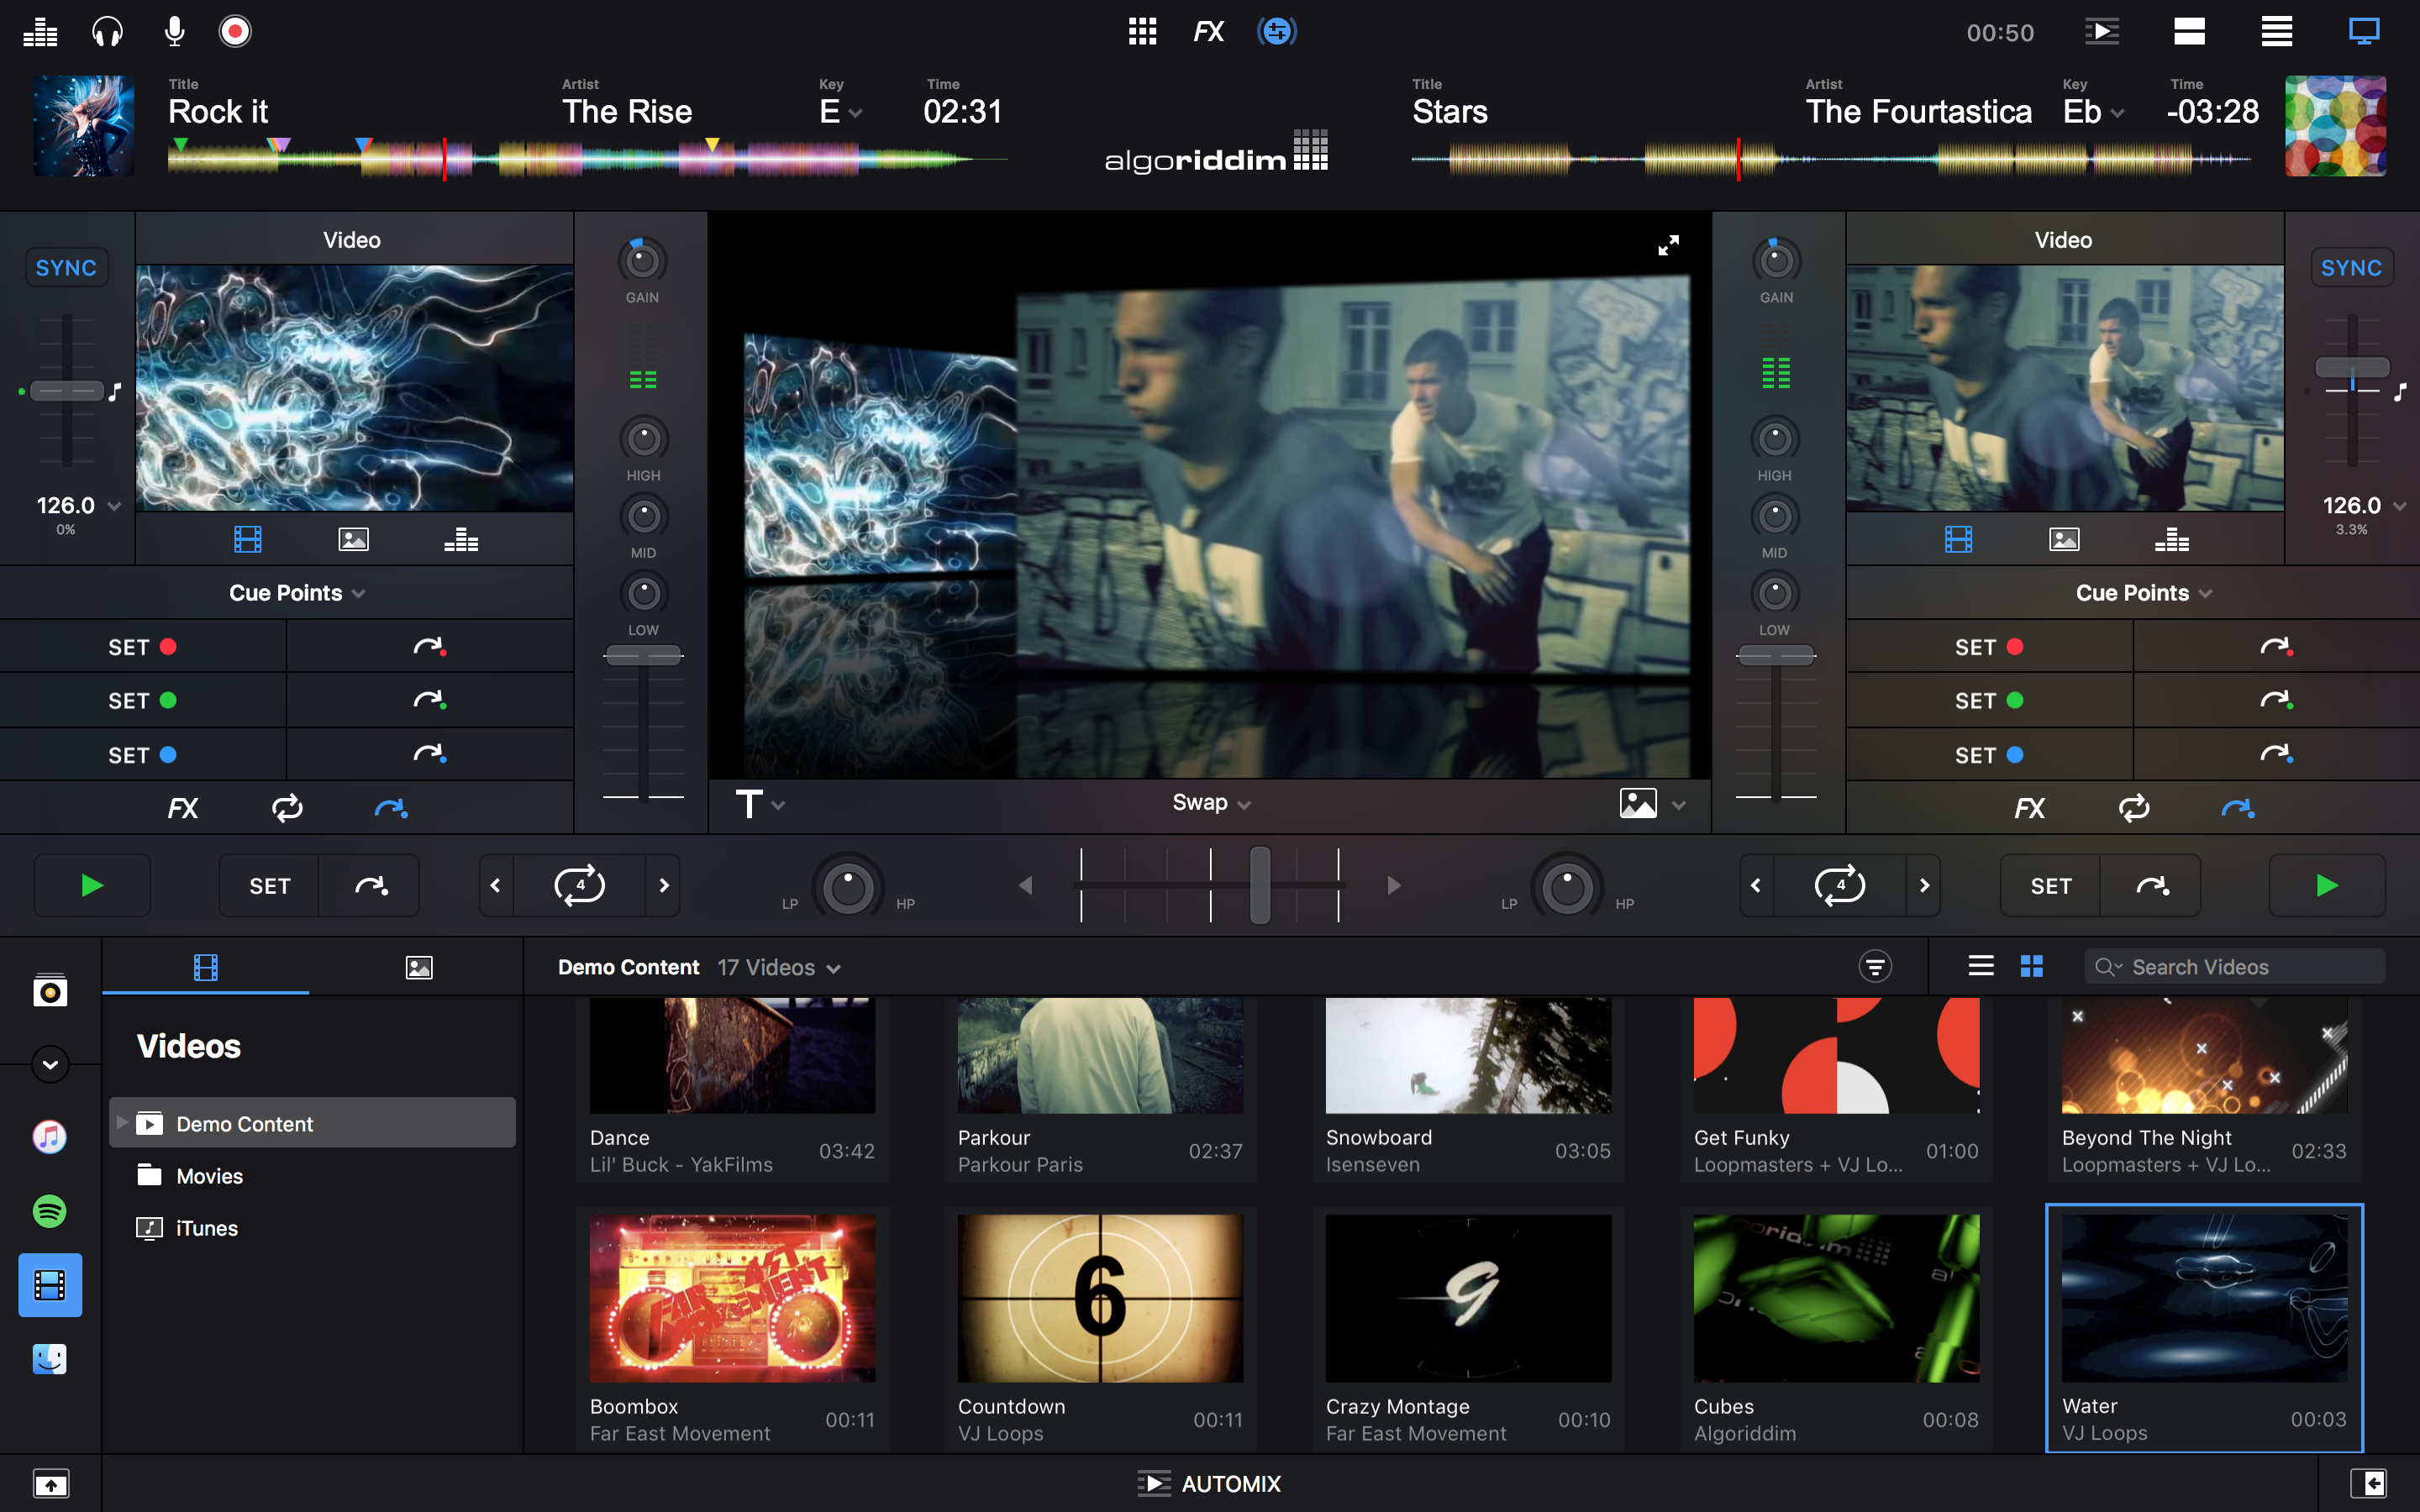 djay Pro 2 Released, Adds AI-Assisted Mixing & Unified Music